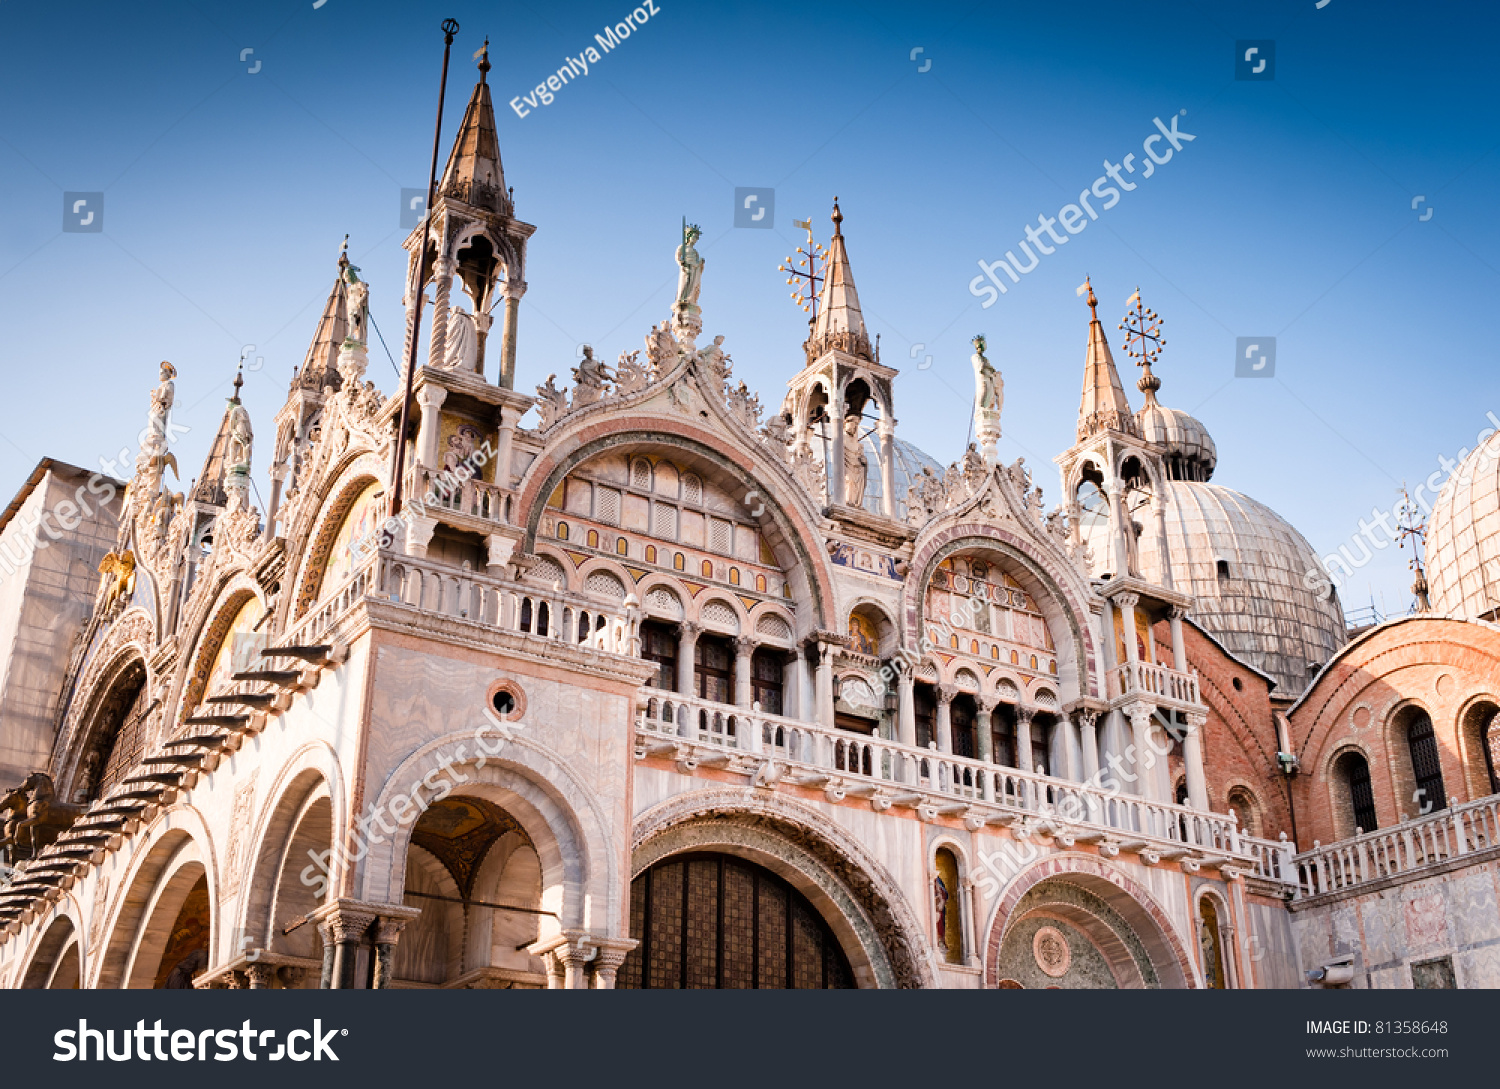 Cathedral of san marco venice italy roof architecture for Architecture venise